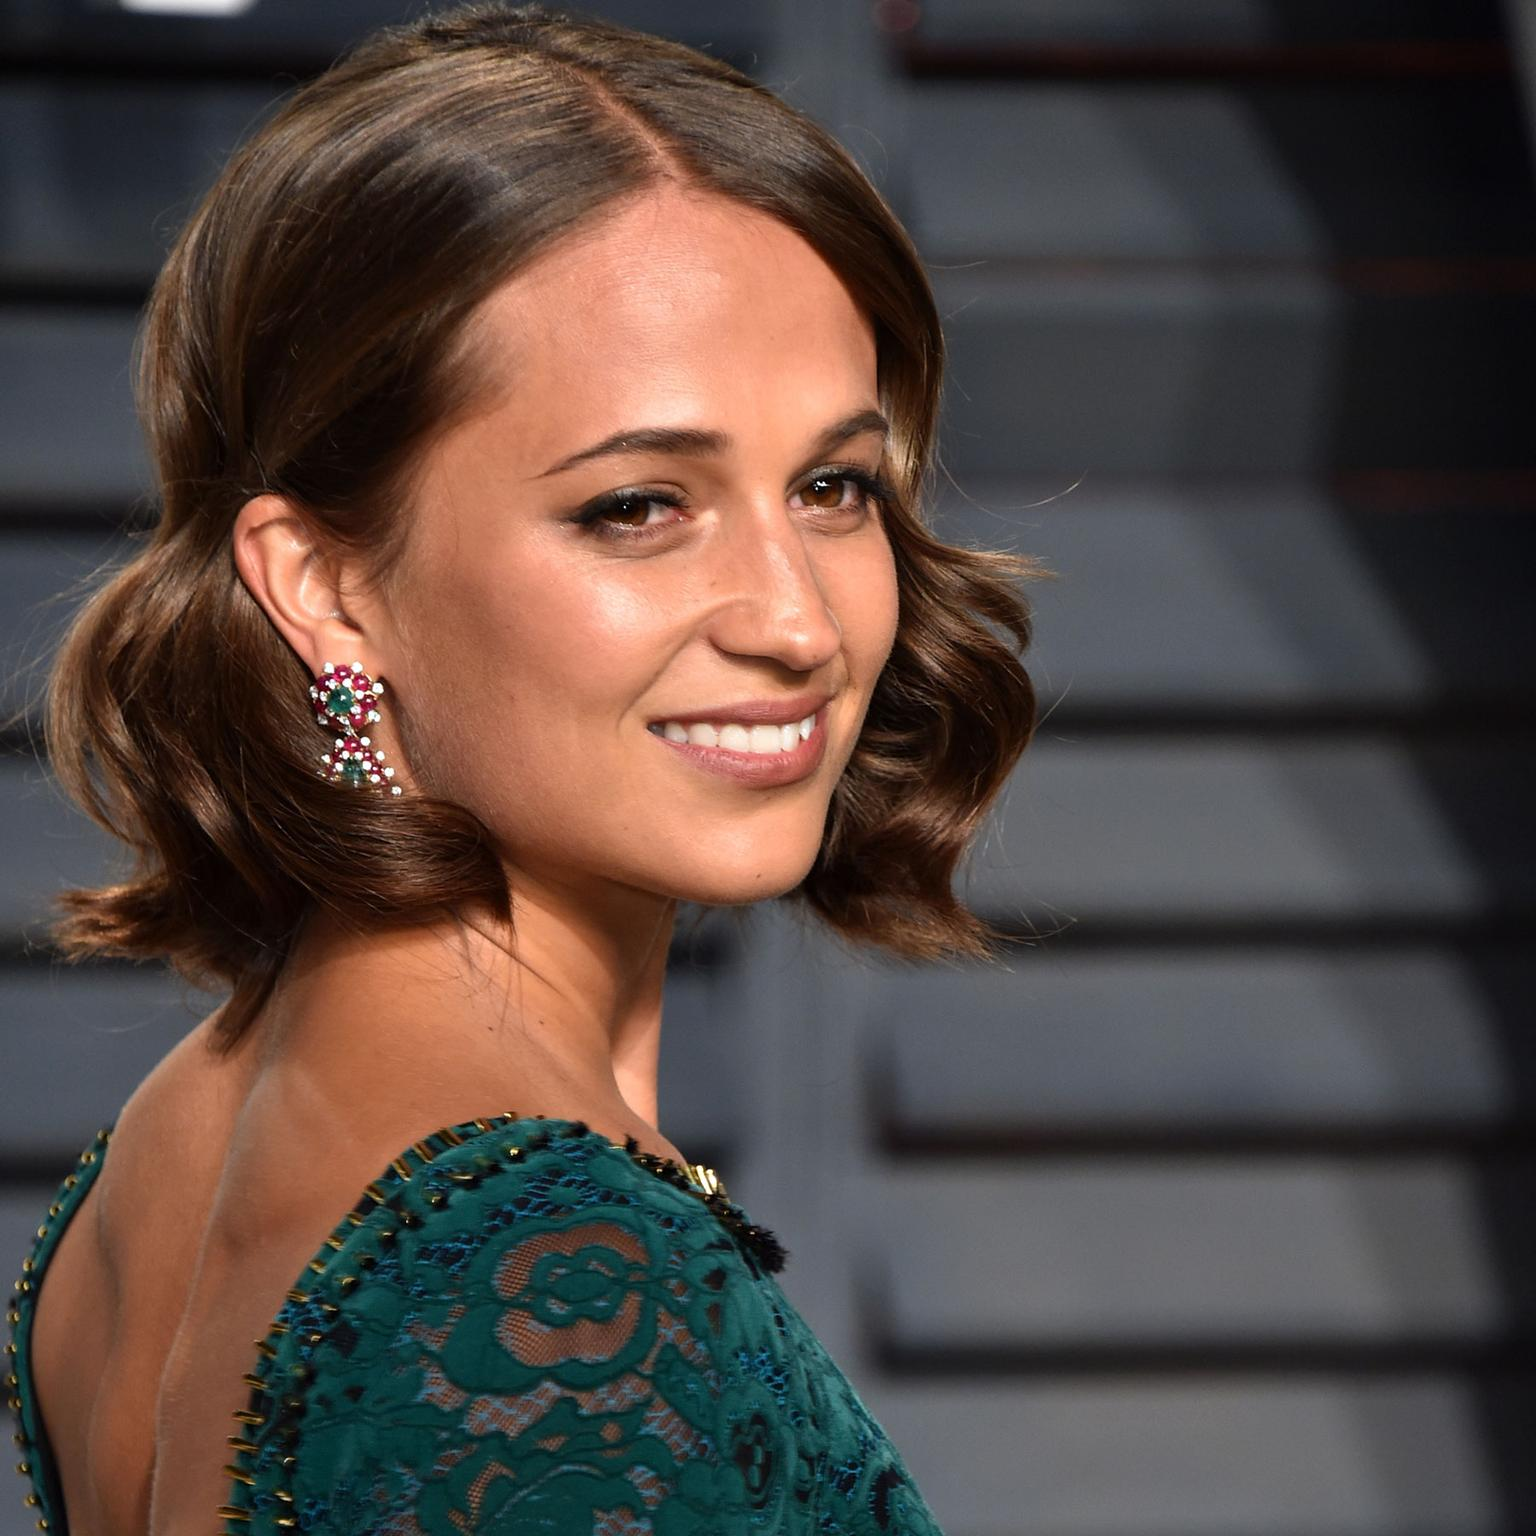 Alicia Vikander in Bulgari jewellery at the Vanity Fair Oscars party 2017